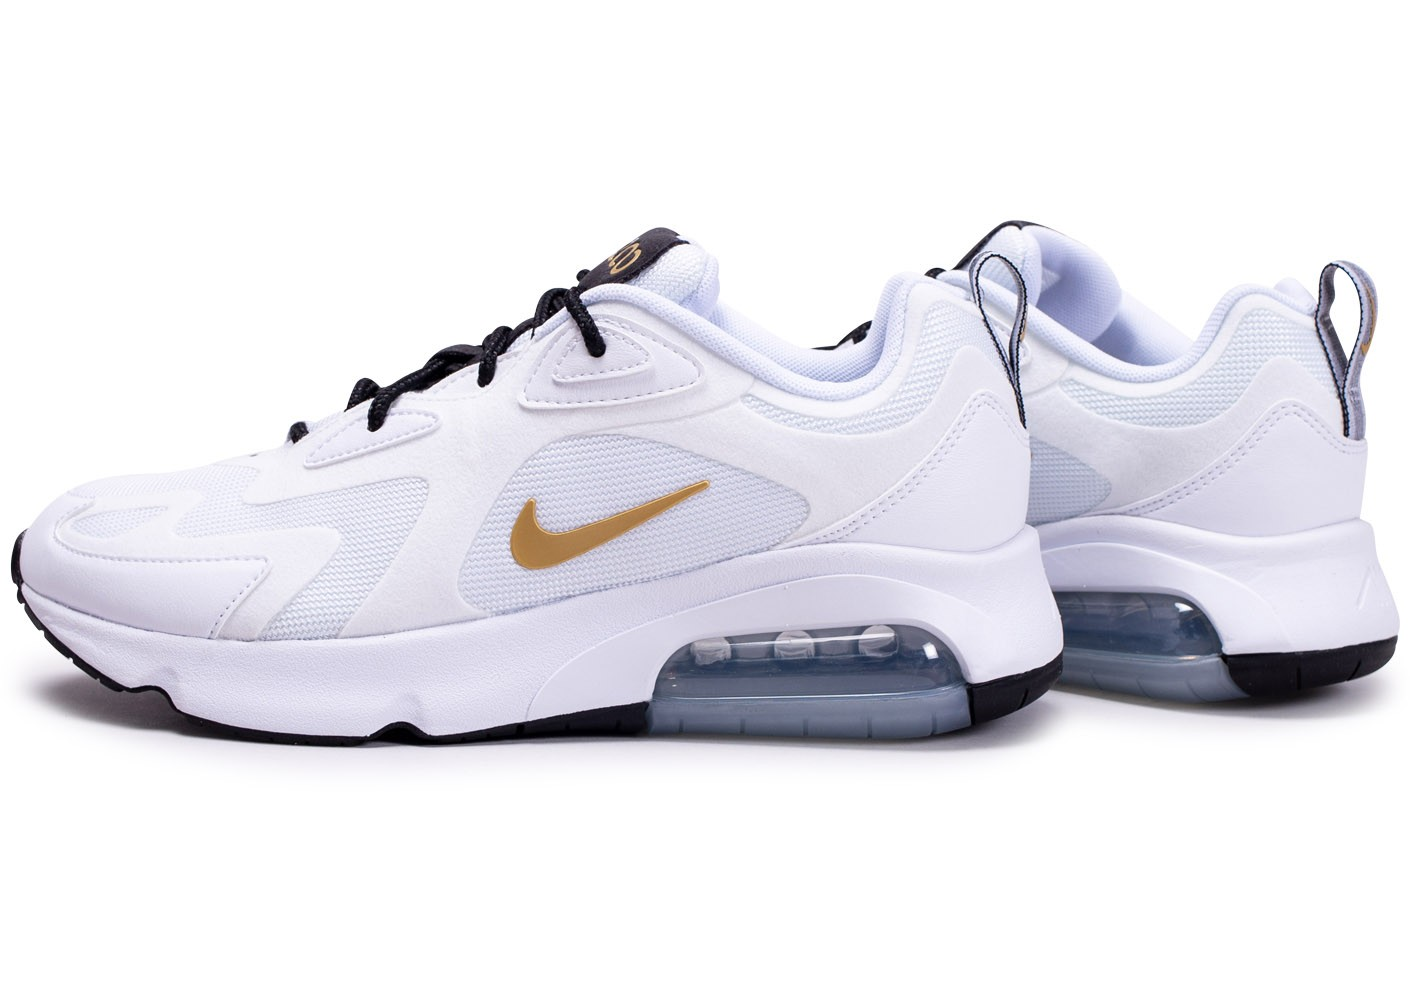 Nike Air Max 200 blanc or - Chaussures Baskets homme - Chausport